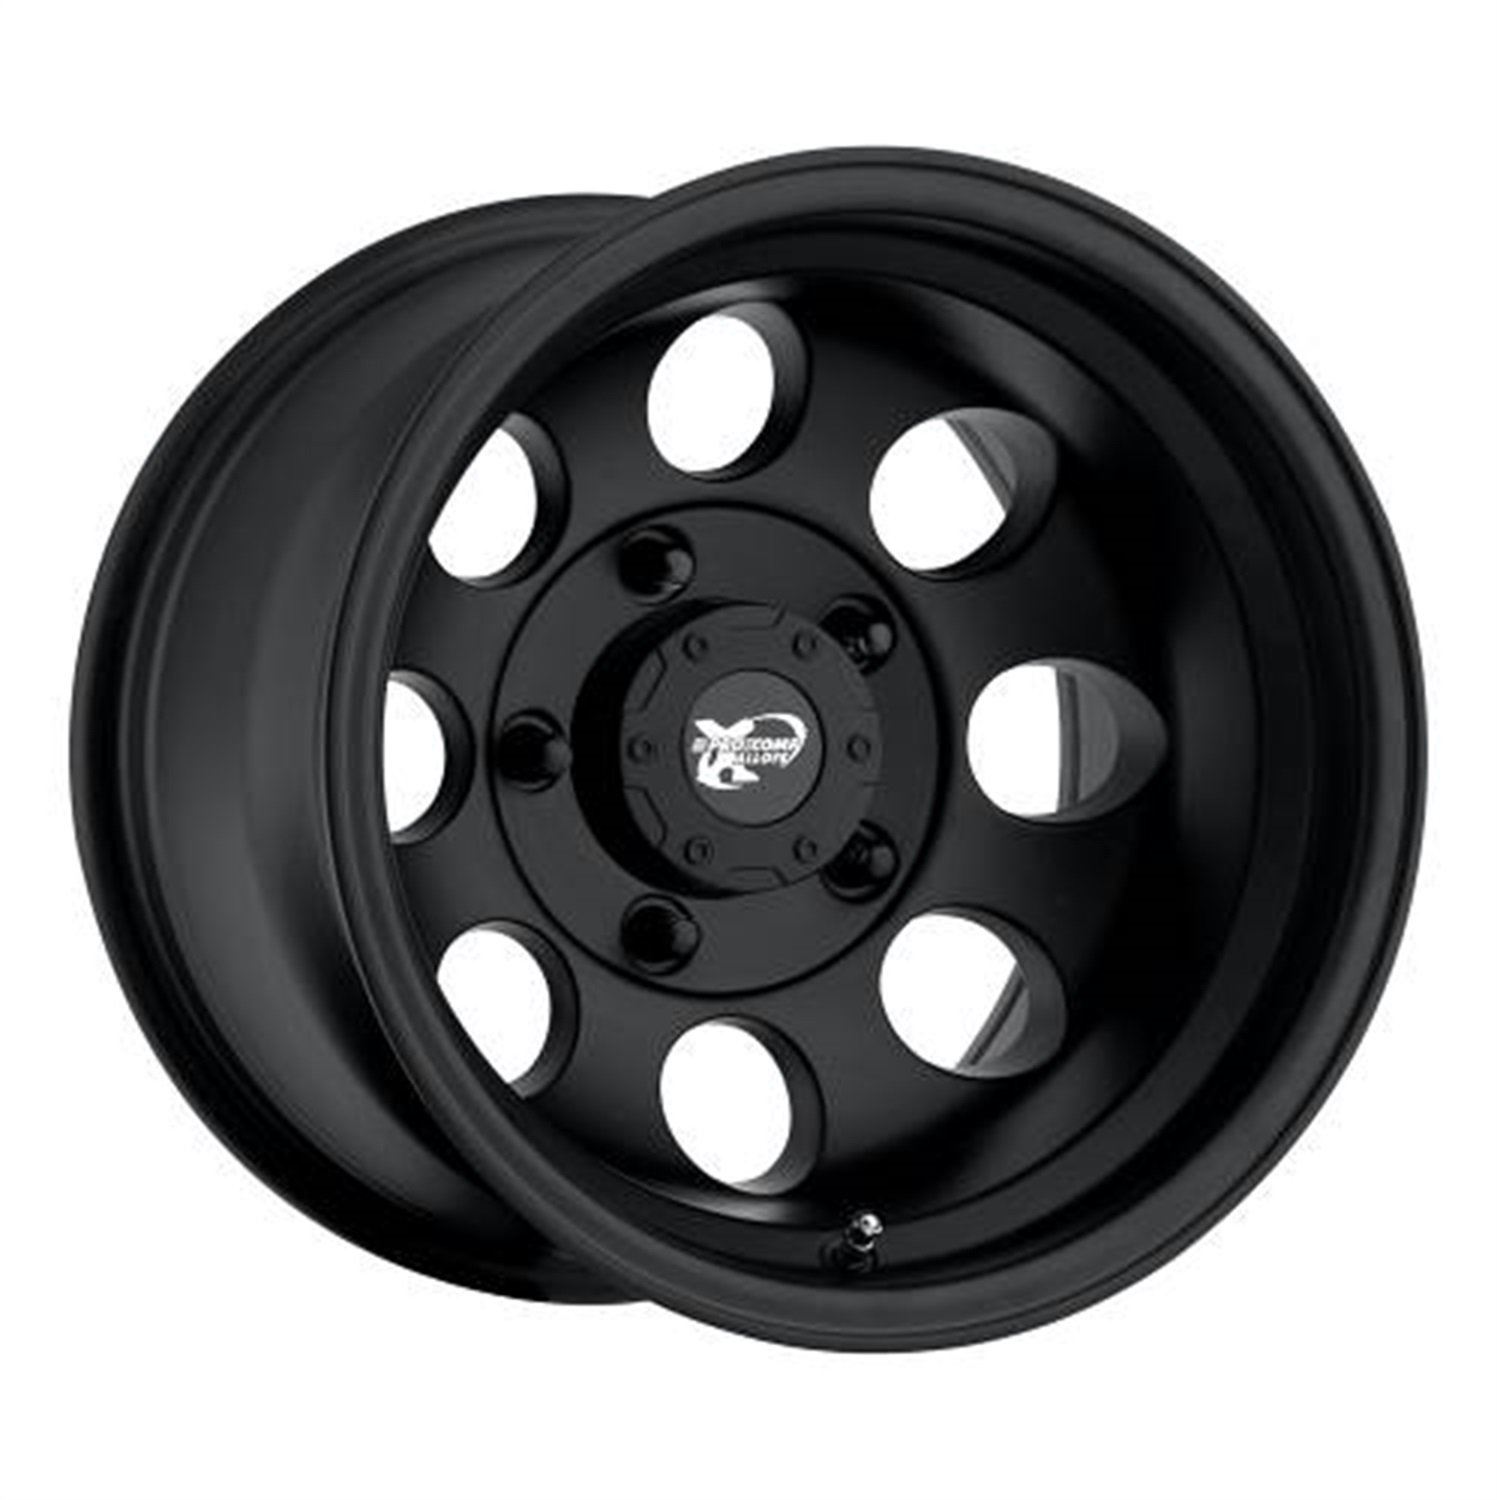 Pro Comp Alloys Series 69 Wheel with Flat Black Finish (17x9''/8x170mm)